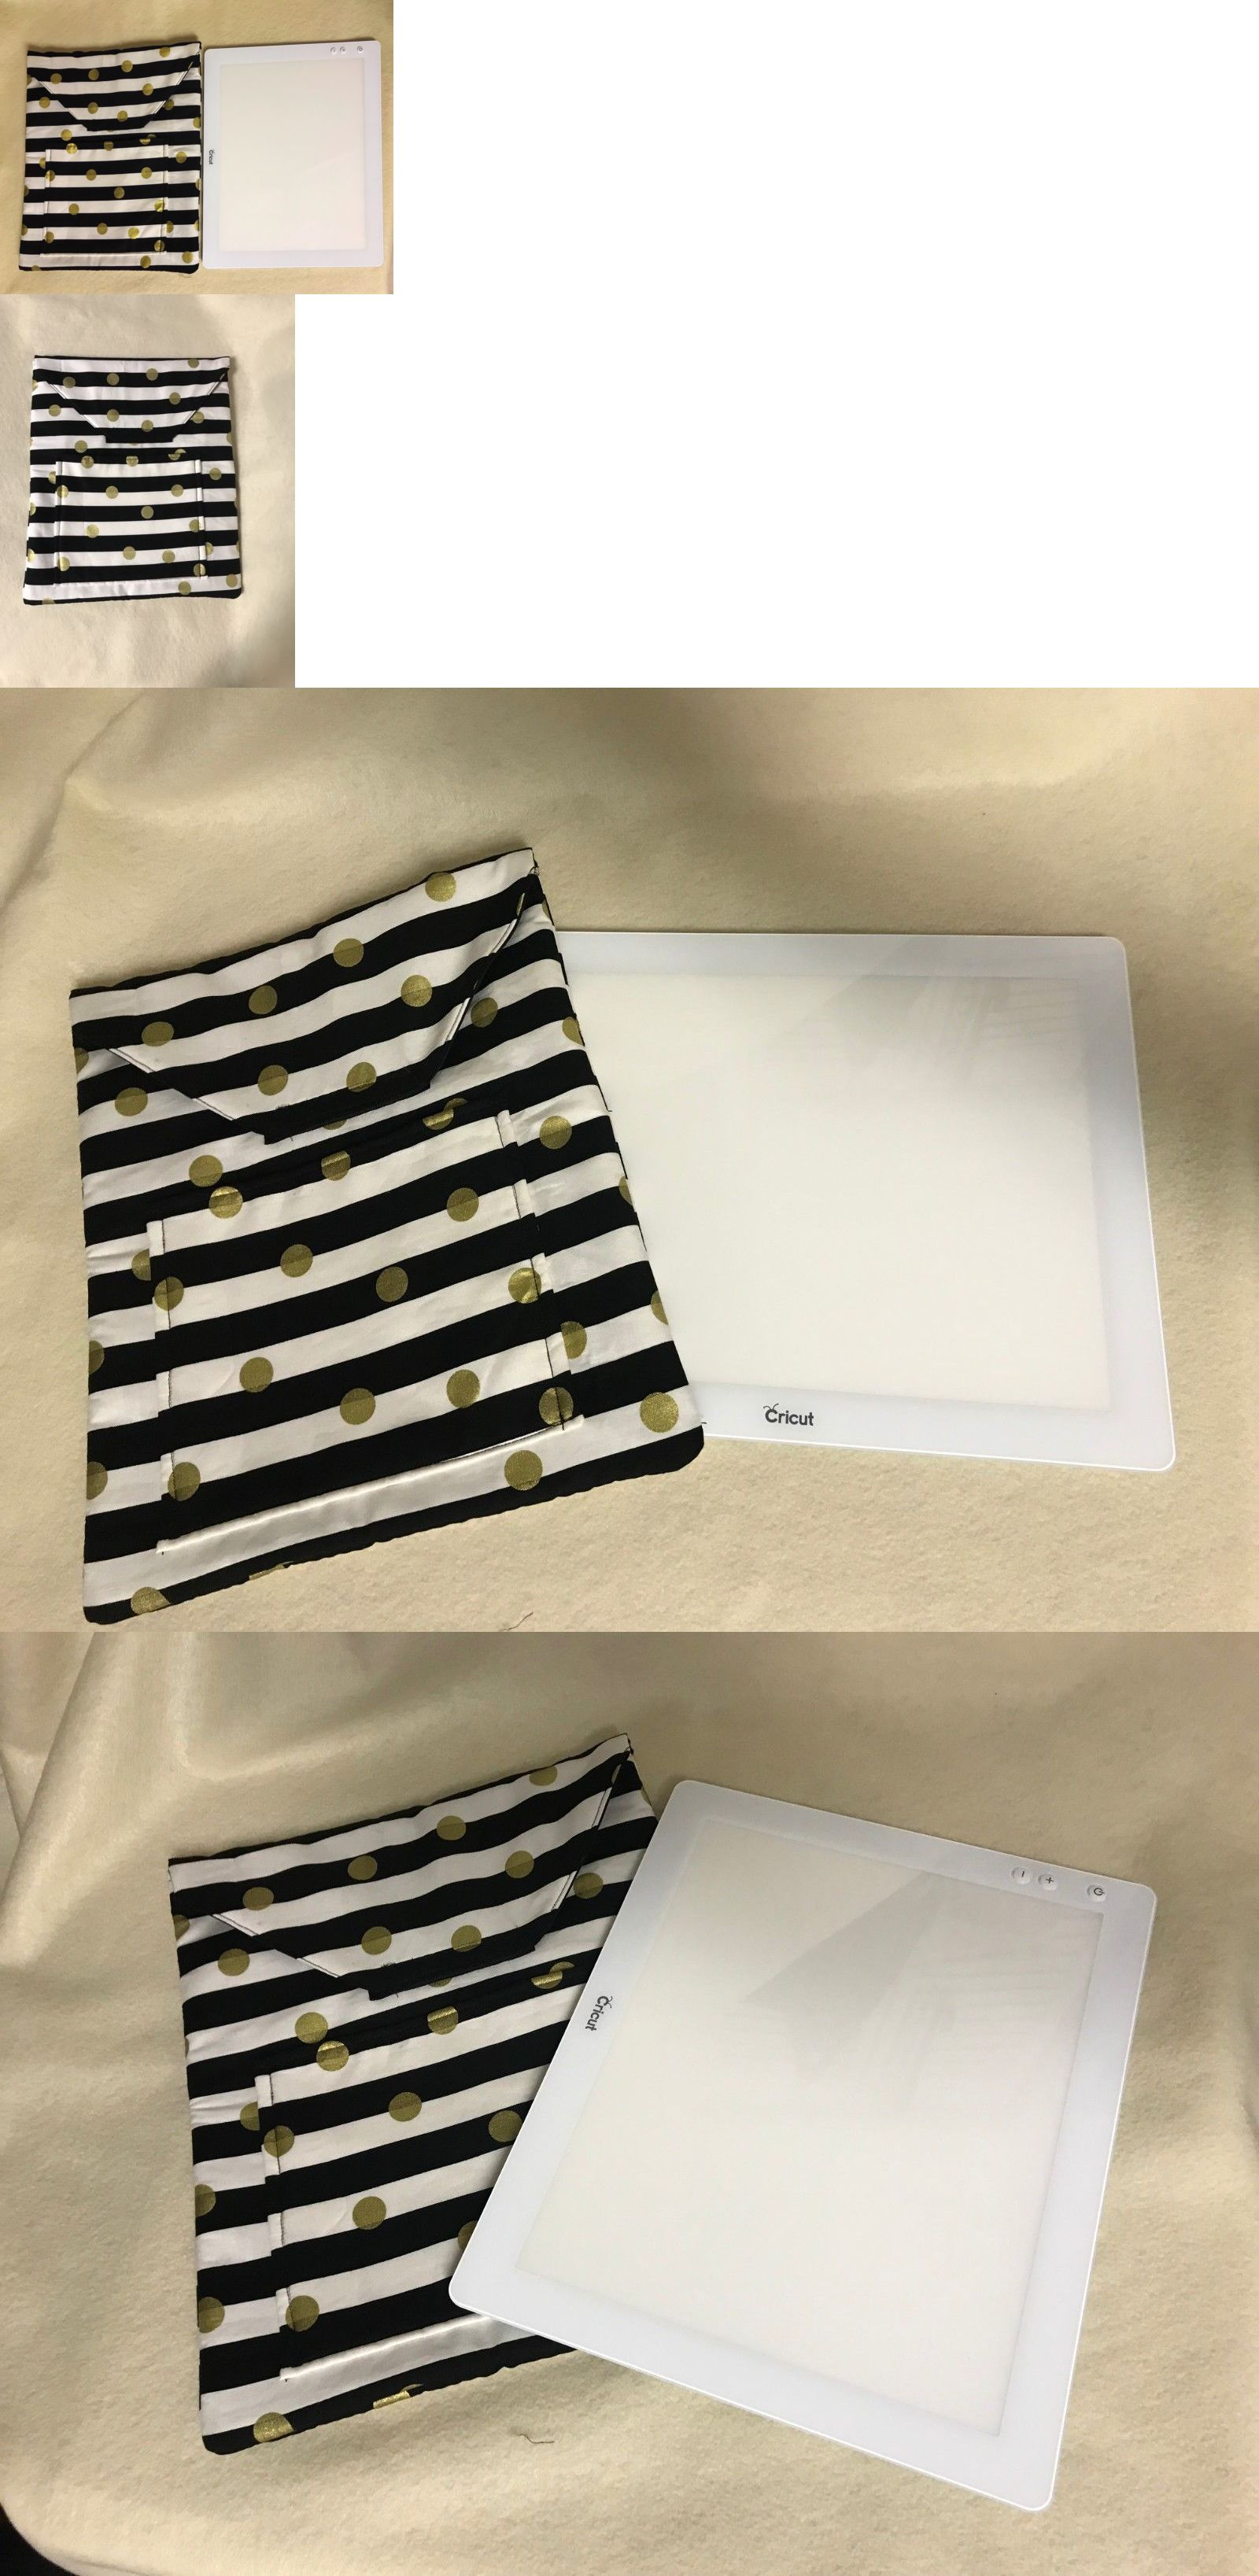 Machine Parts And Accessories 183240 Cricut Bright Pad Cover Case Black Lines Gold Betzysdesigns Quilted Brightpad Buy It Now On Pad Cover Cricut Quilted